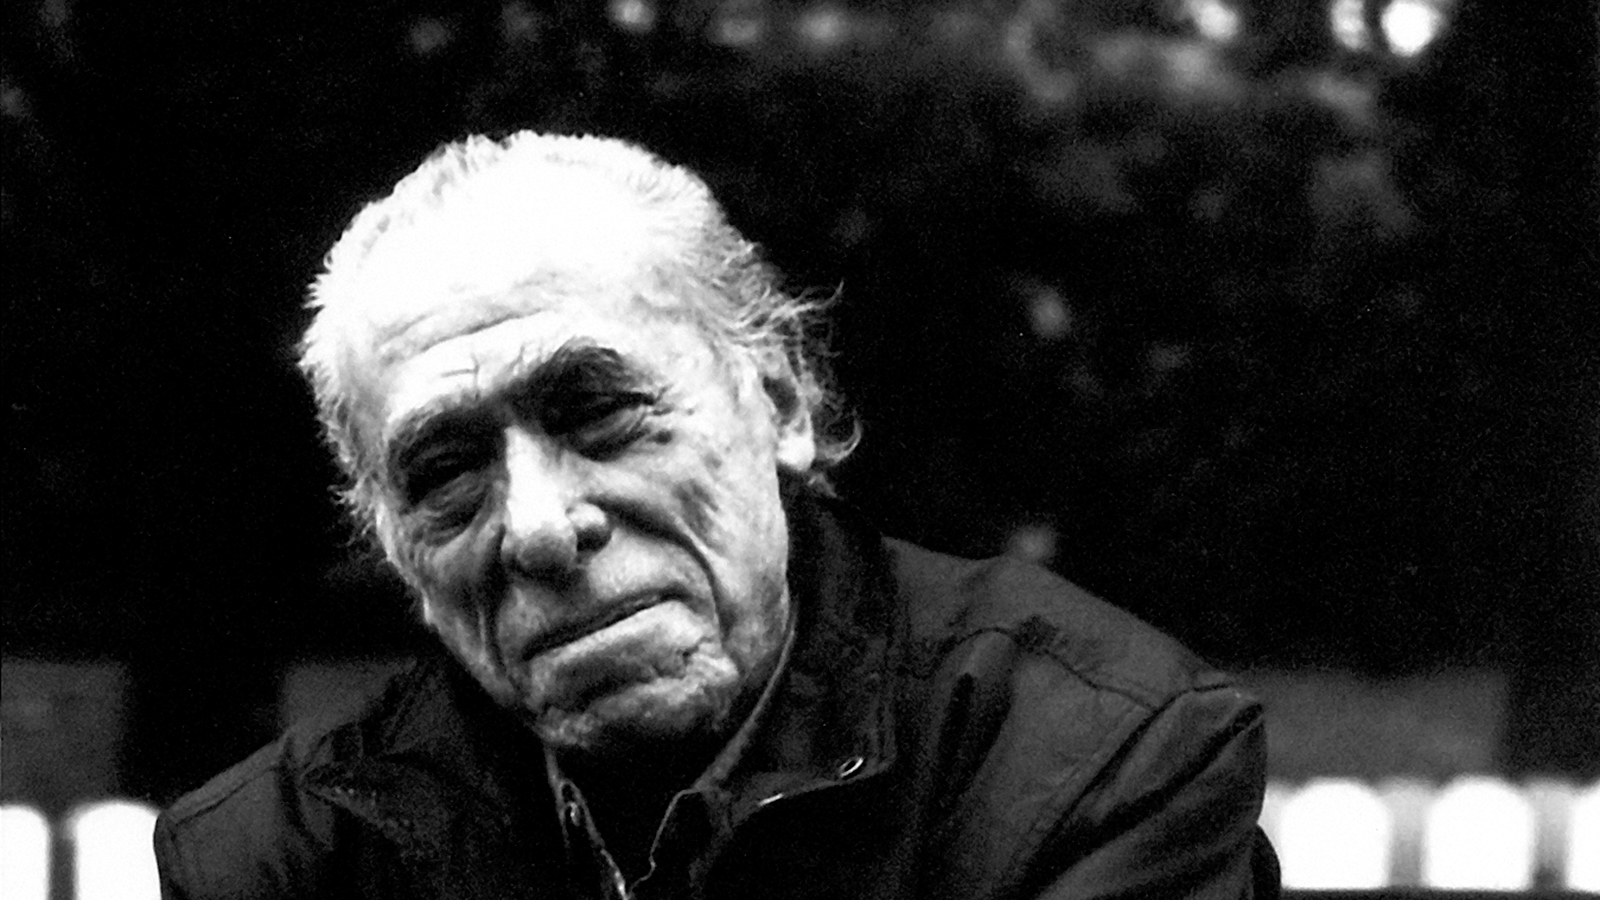 Changes to Posthumously Published Poems by Charles Bukowski